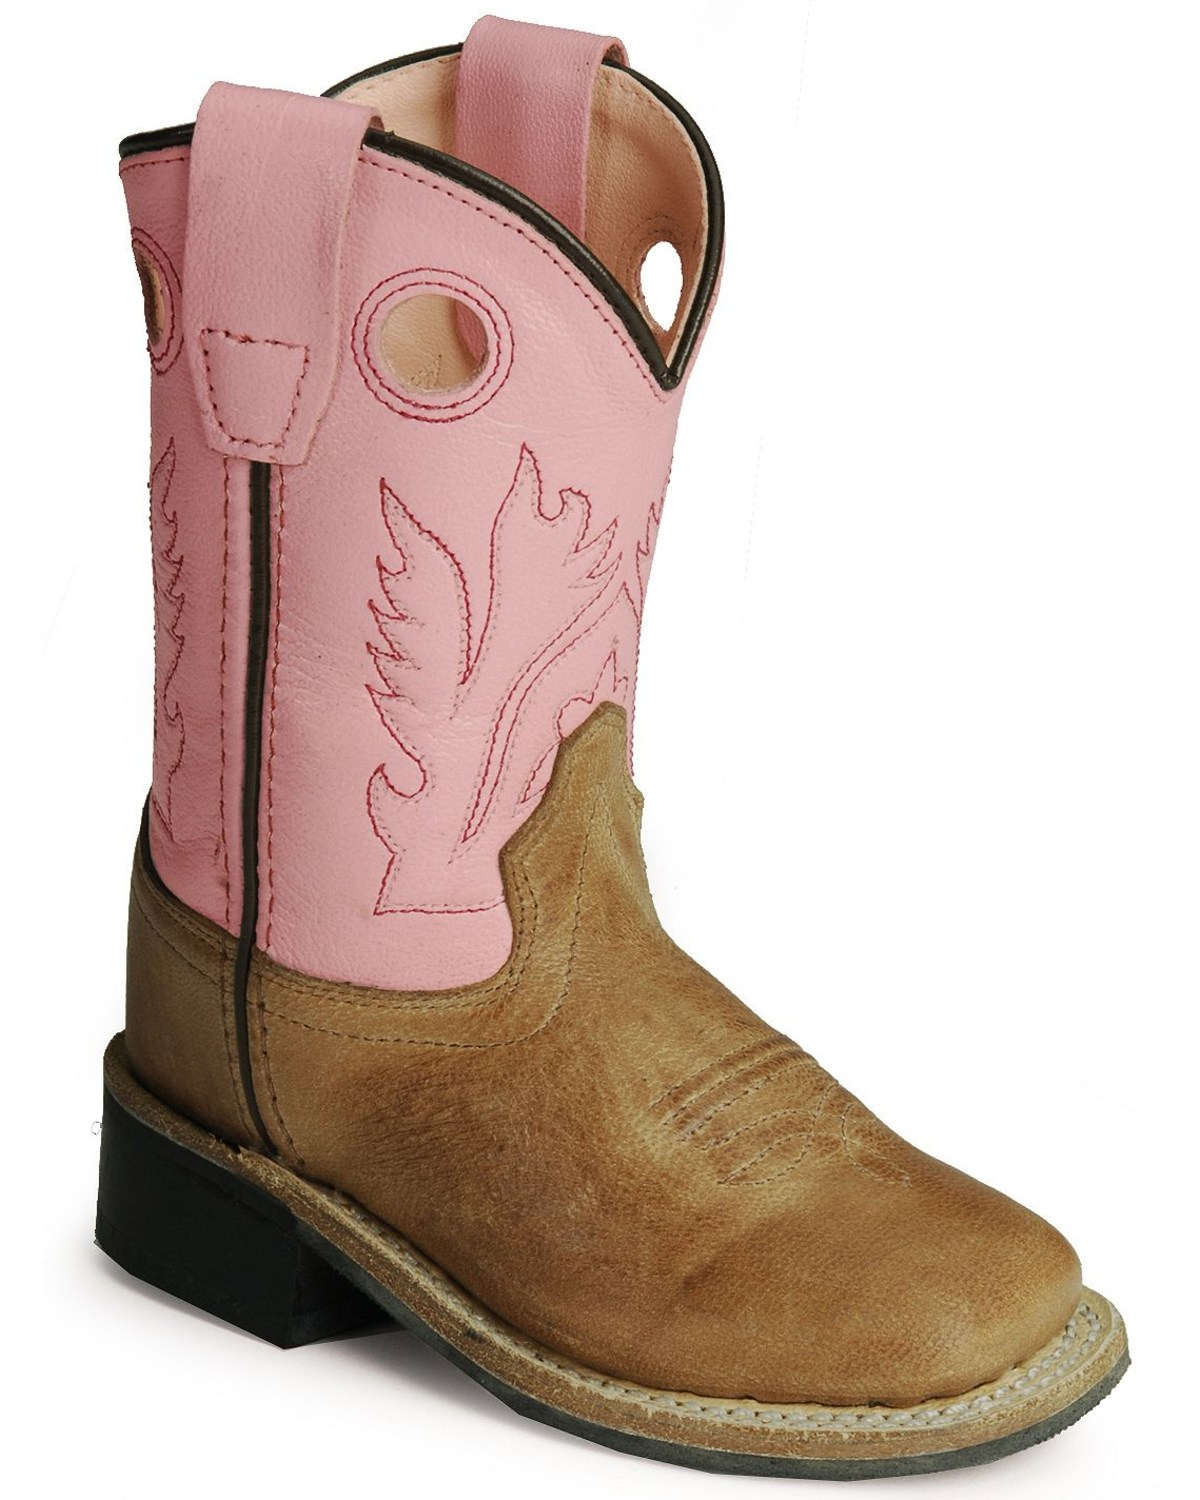 Old West Toddler Girls' Pink Cowgirl